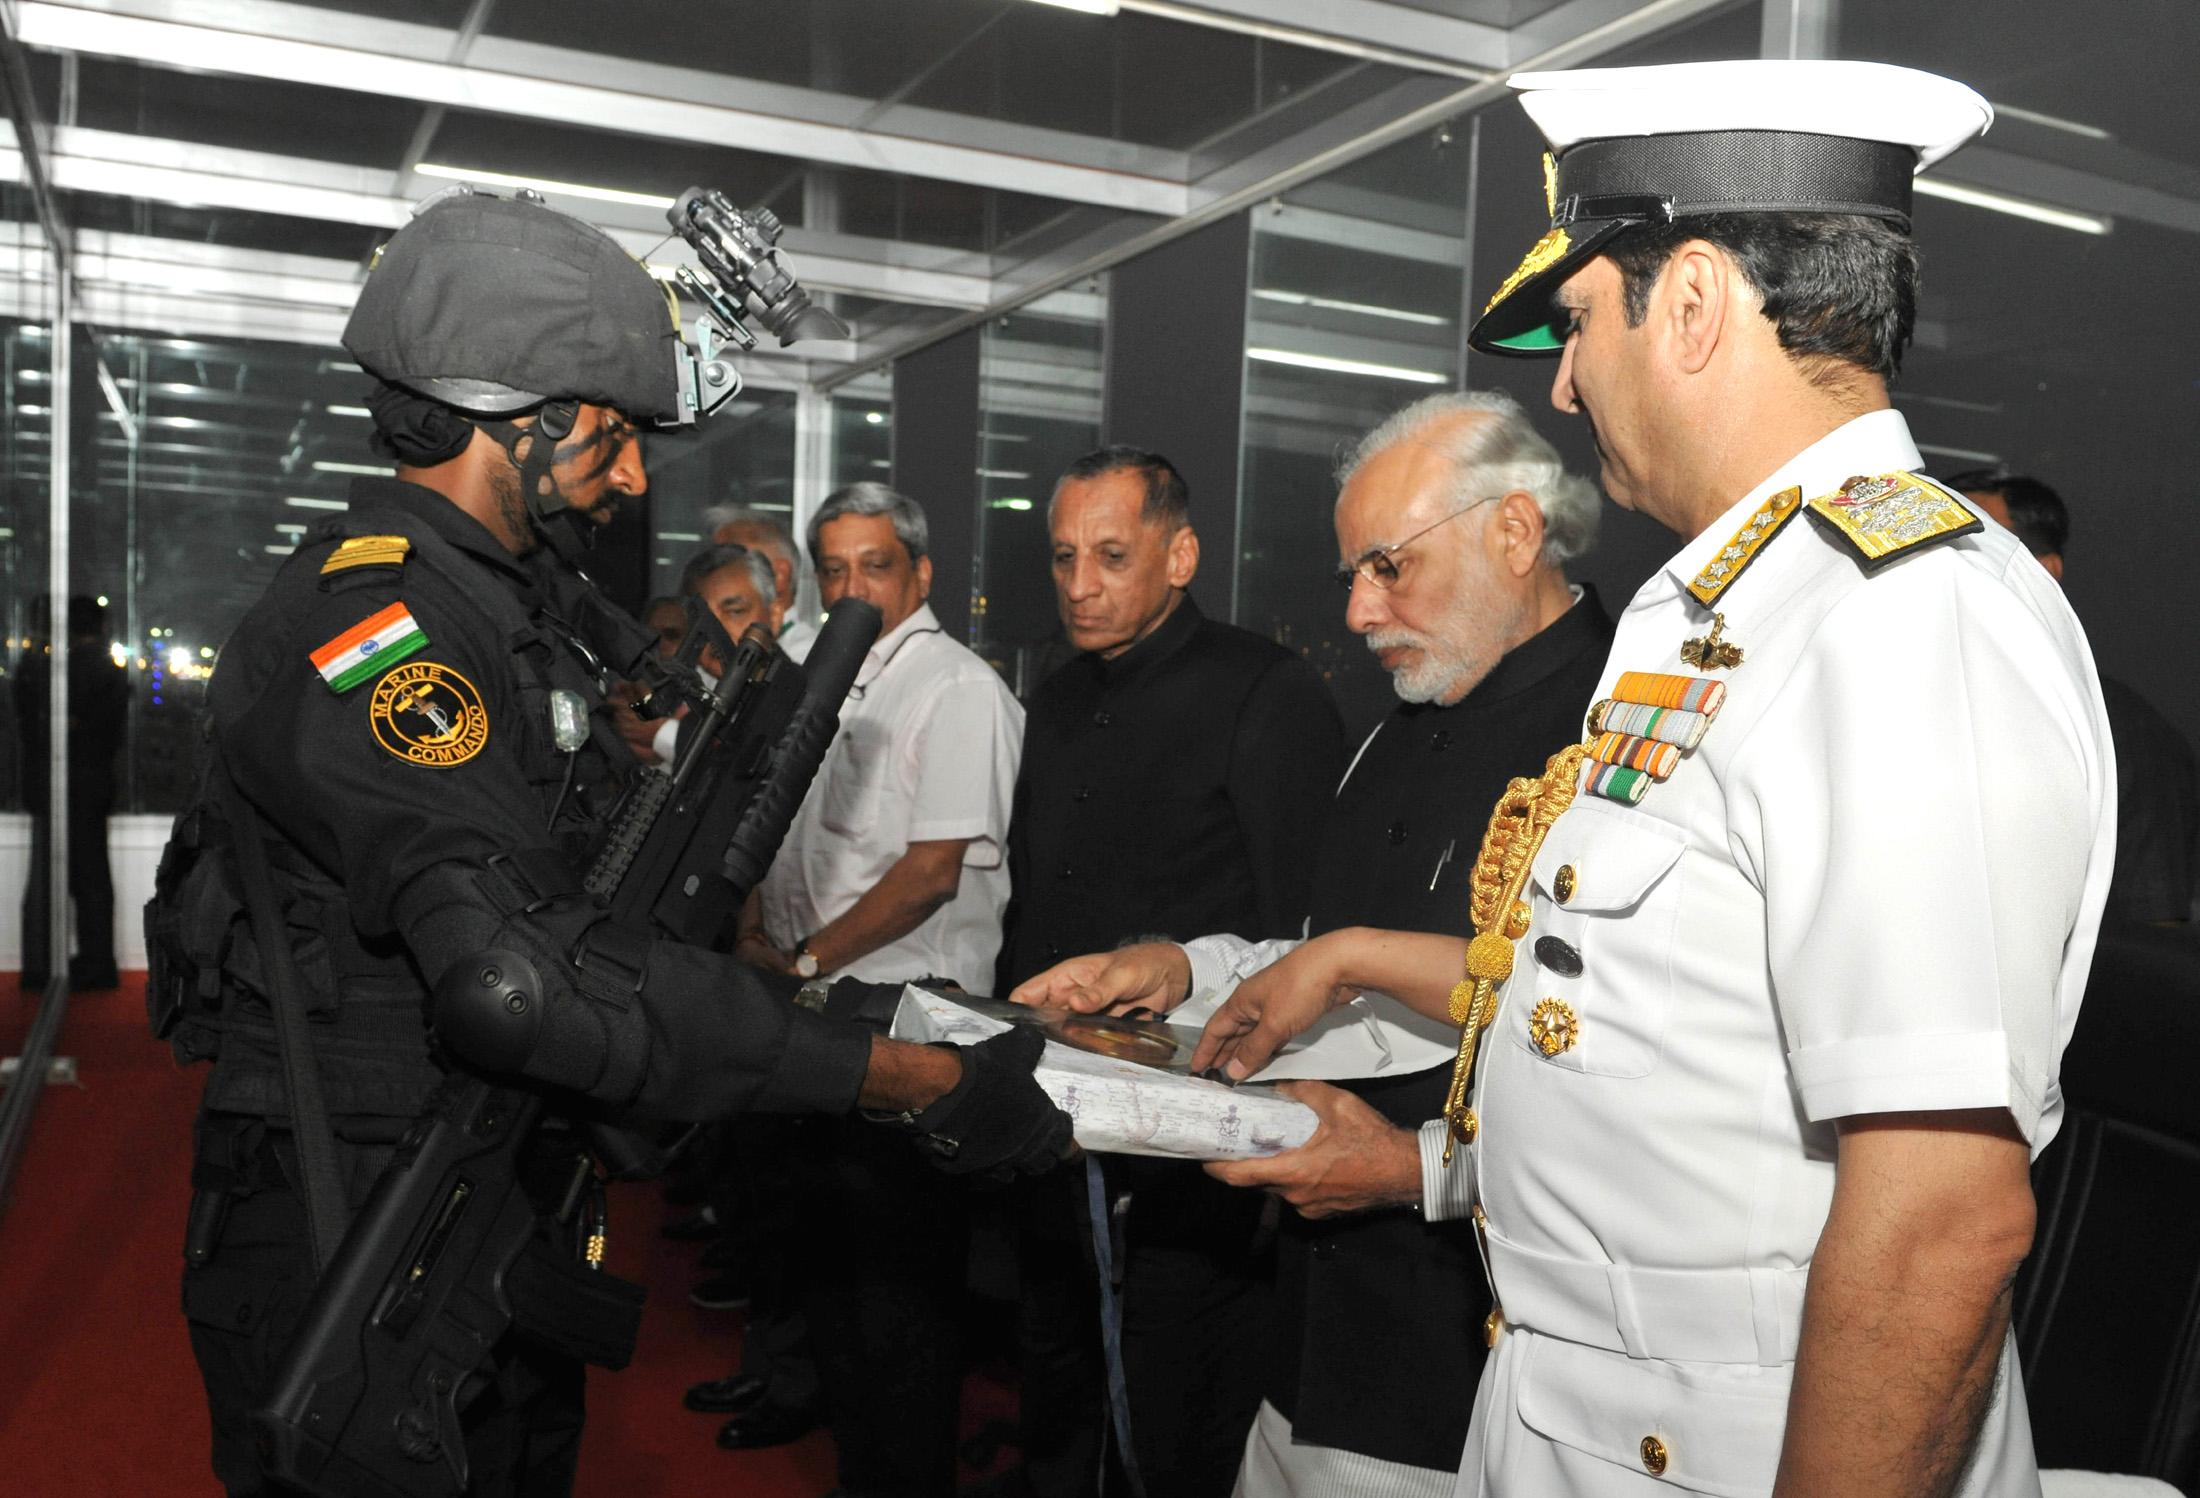 Proposal For An Essay Filenarendra Modi Releasing The Photo Essay Book On Maritime Heritage Of  India Response Essay Thesis also High School Reflective Essay Filenarendra Modi Releasing The Photo Essay Book On Maritime  Essay For Students Of High School